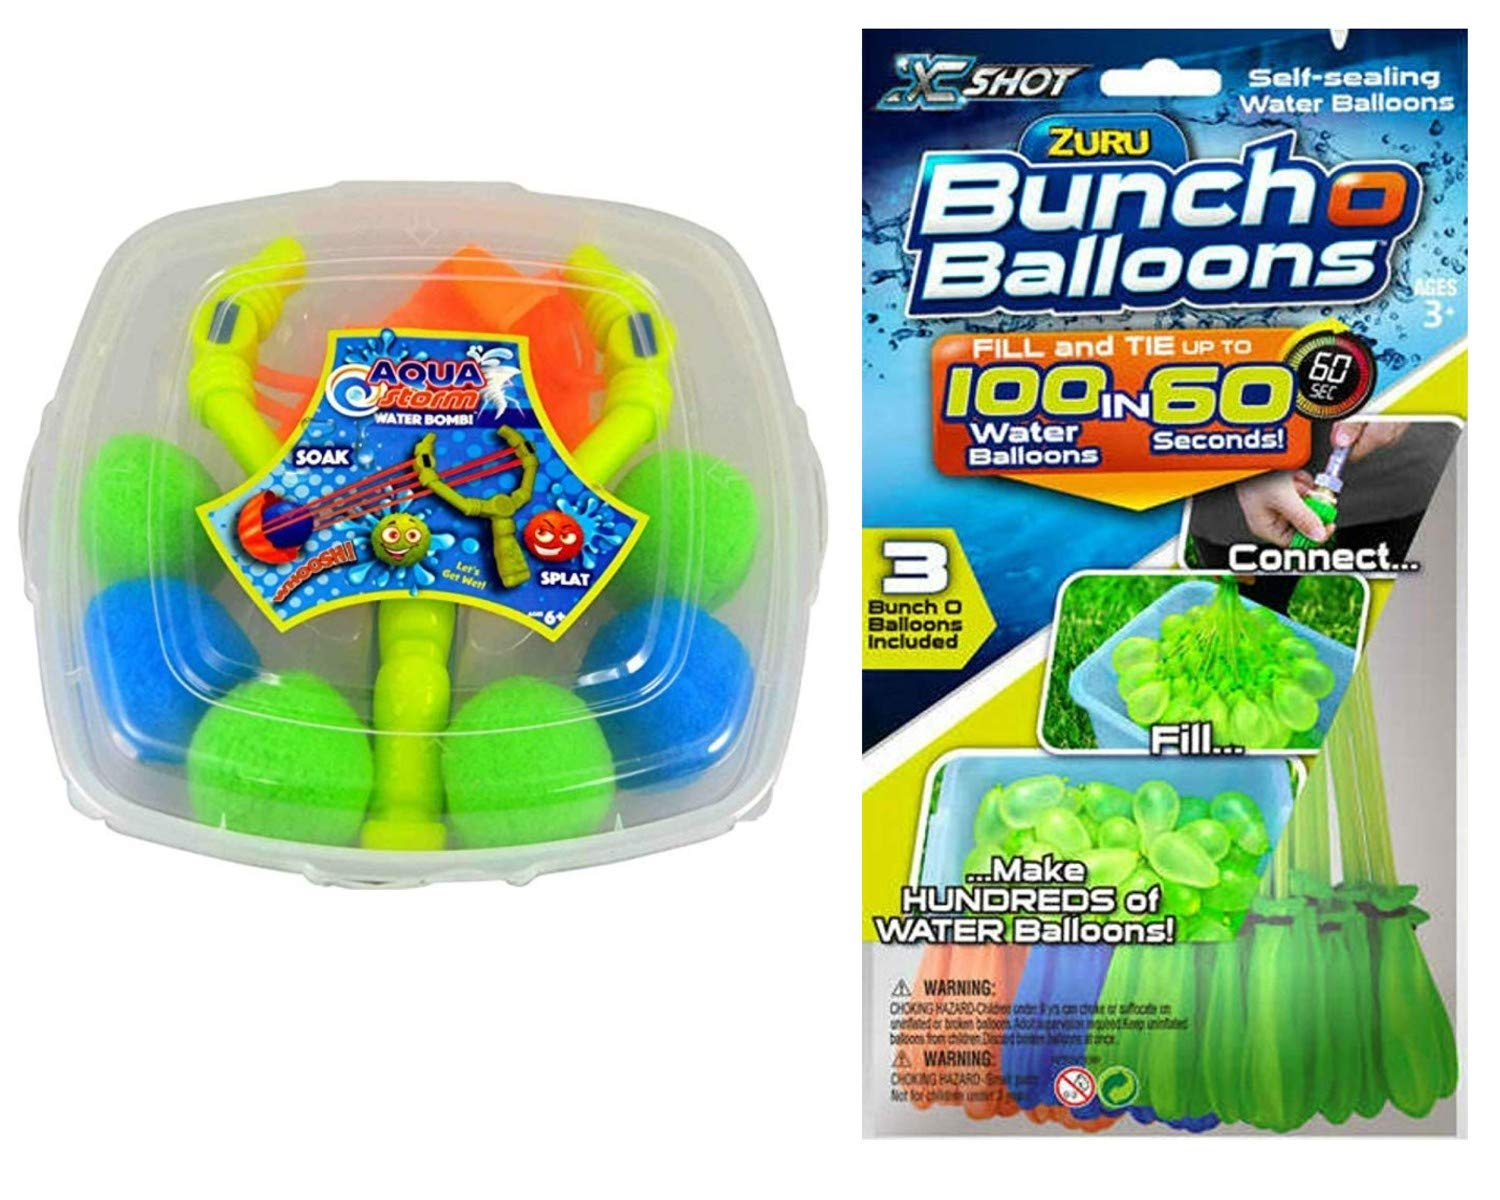 ZURU Bunch O Balloons Self Sealing Water Balloons Bundled with One Water Balloon Slingshot Launcher Set - 105 Total Quick Fill Water Balloons Assorted Colors (2 Items)